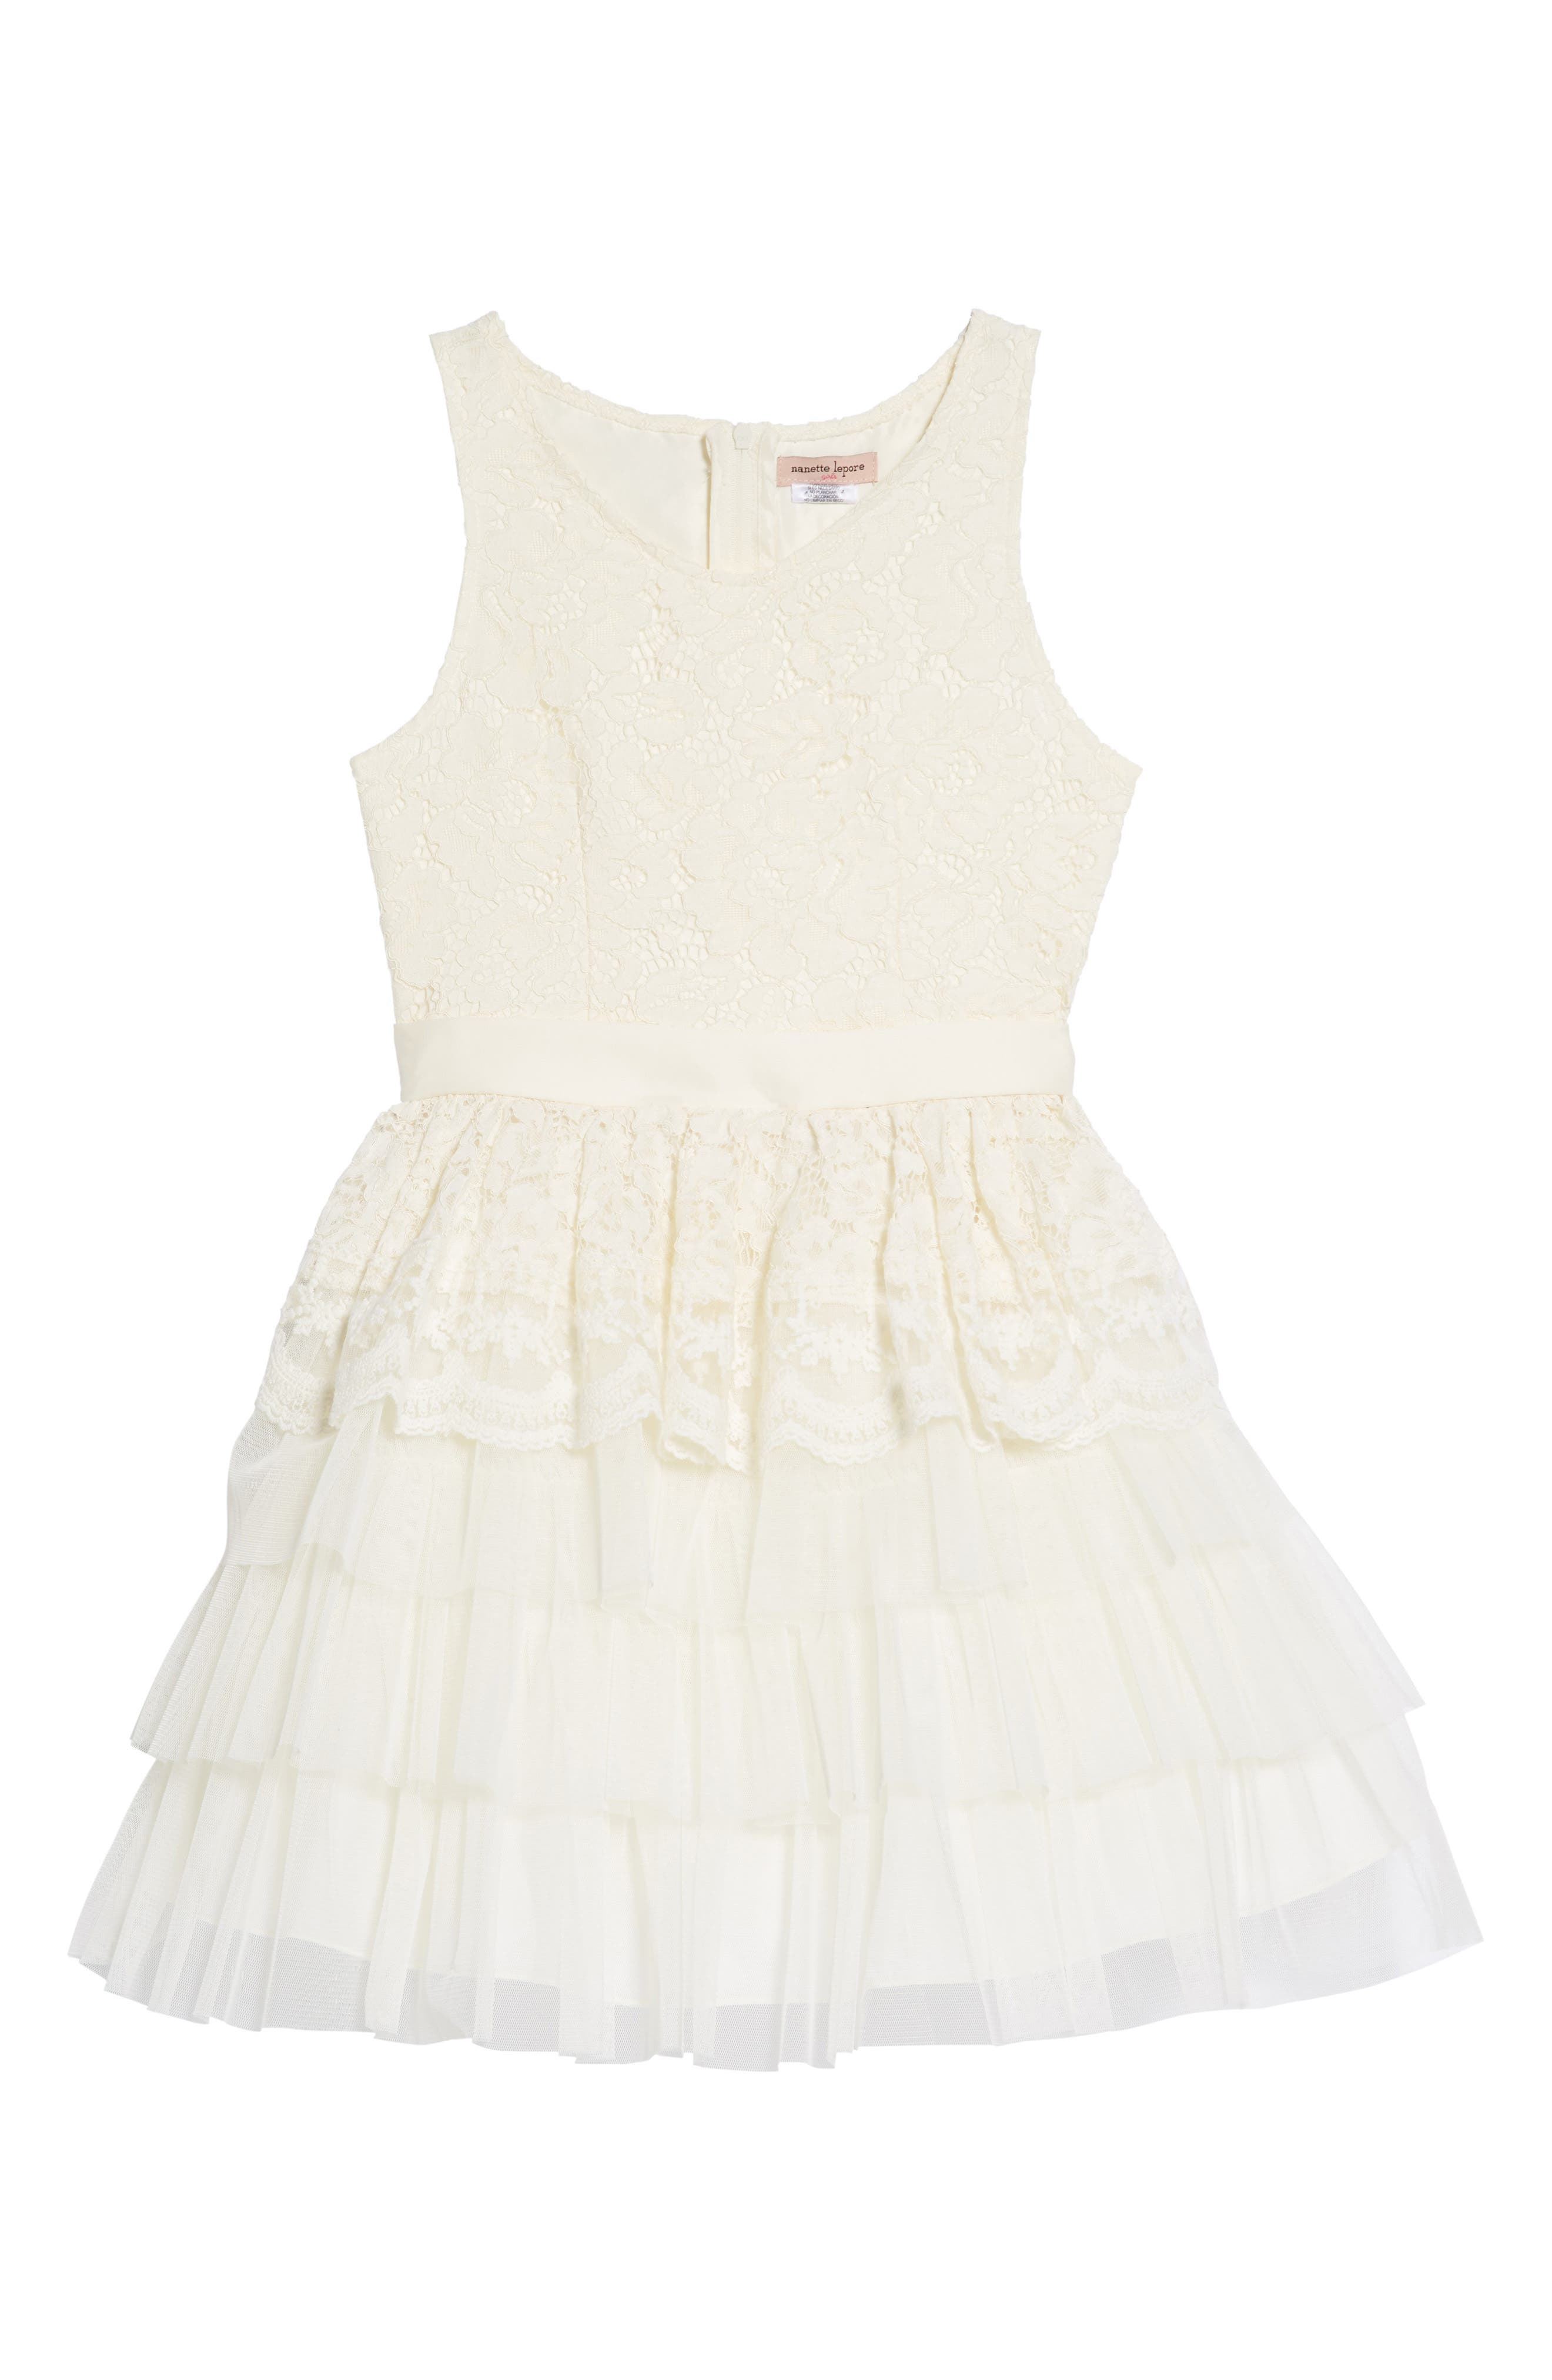 Tiered Lace & Tulle Dress,                         Main,                         color, Cream